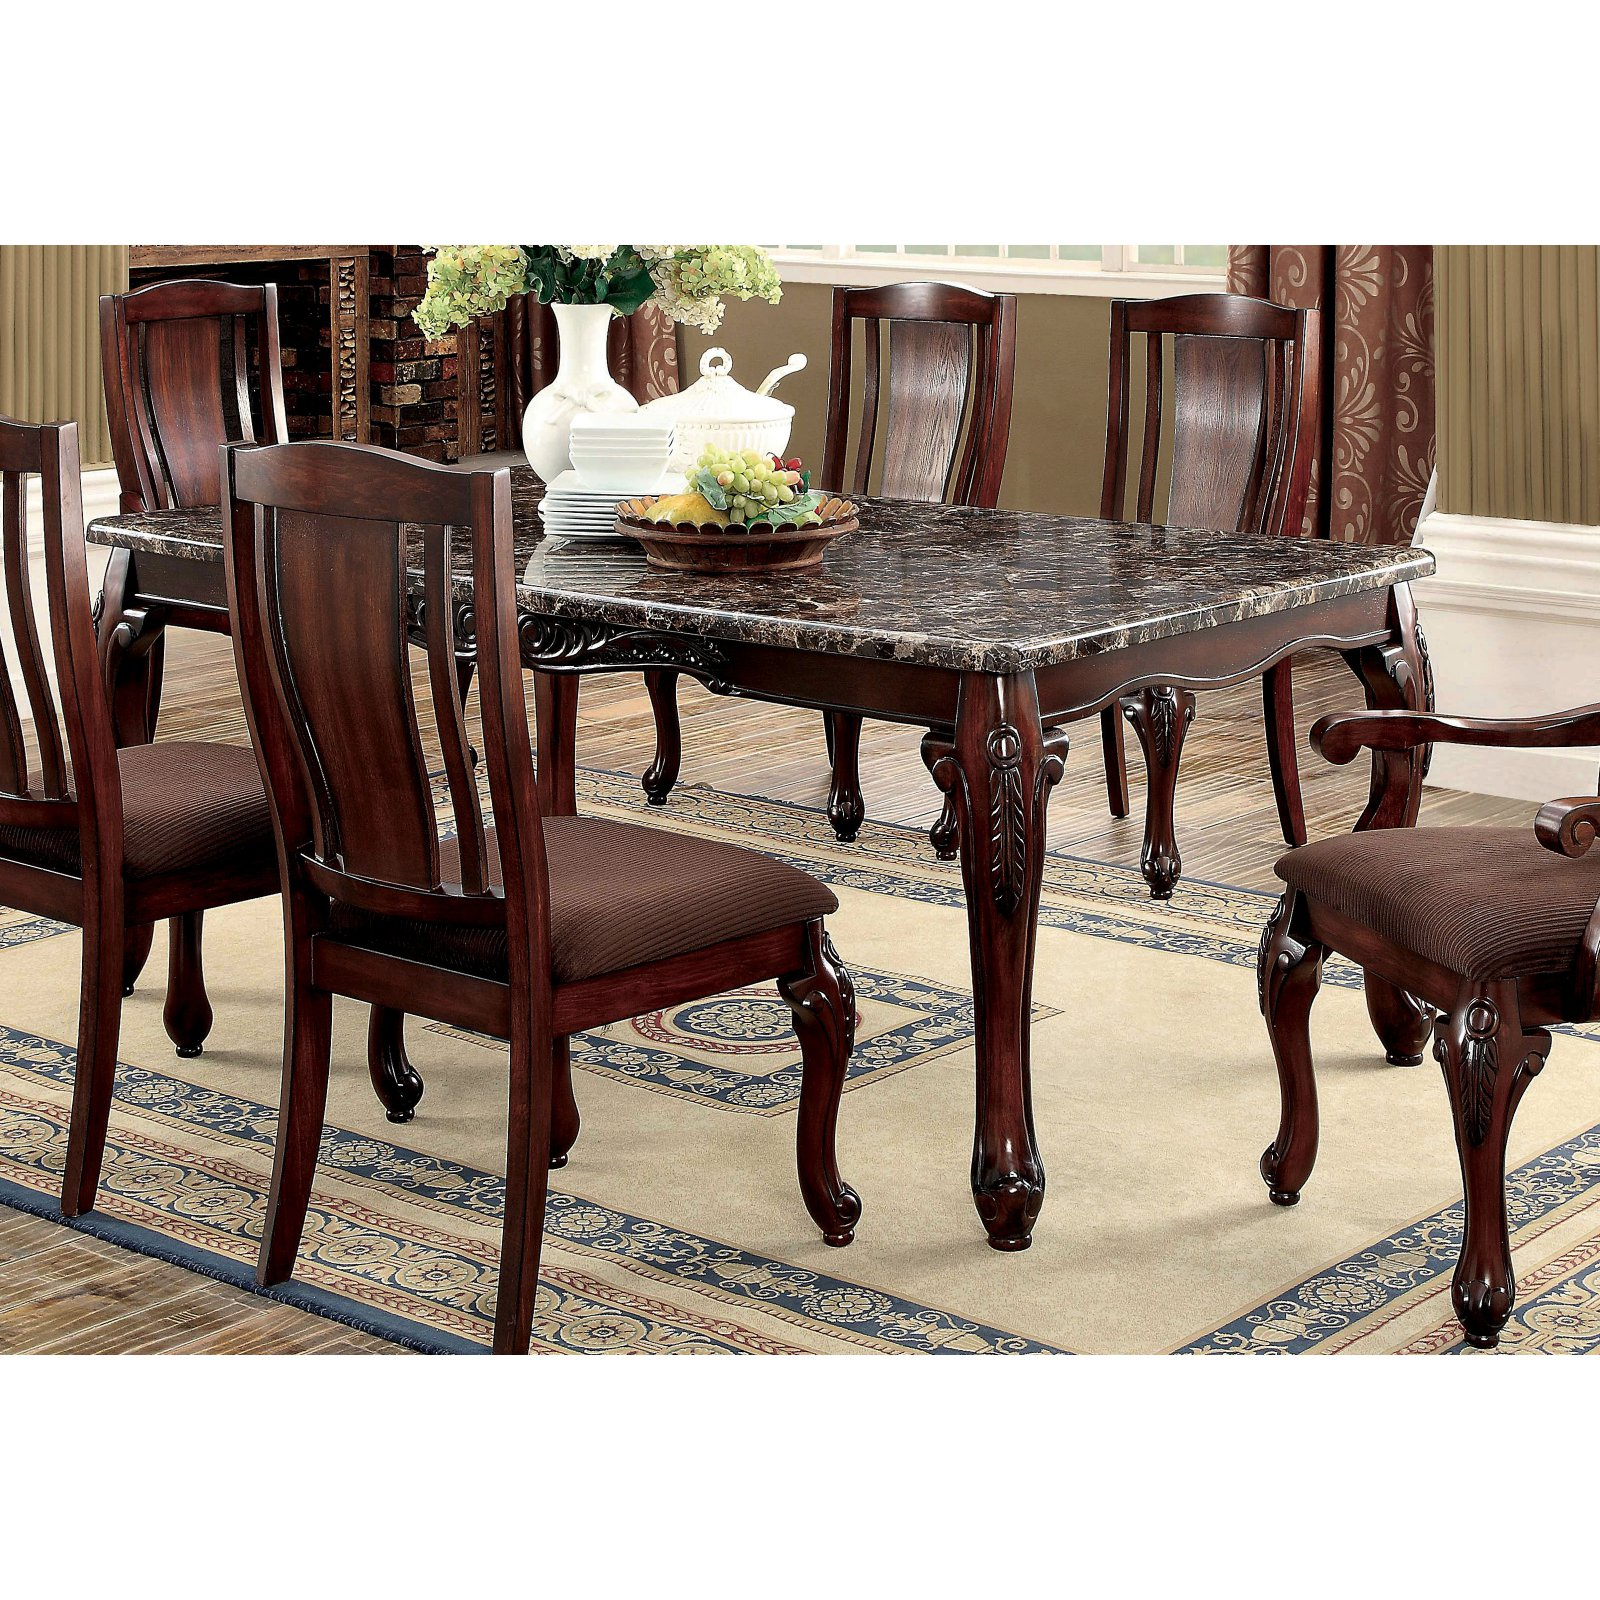 Furniture of America Delaine Traditional Faux Marble Top Dining Table - Walmart.com  sc 1 st  Walmart & Furniture of America Delaine Traditional Faux Marble Top Dining ...